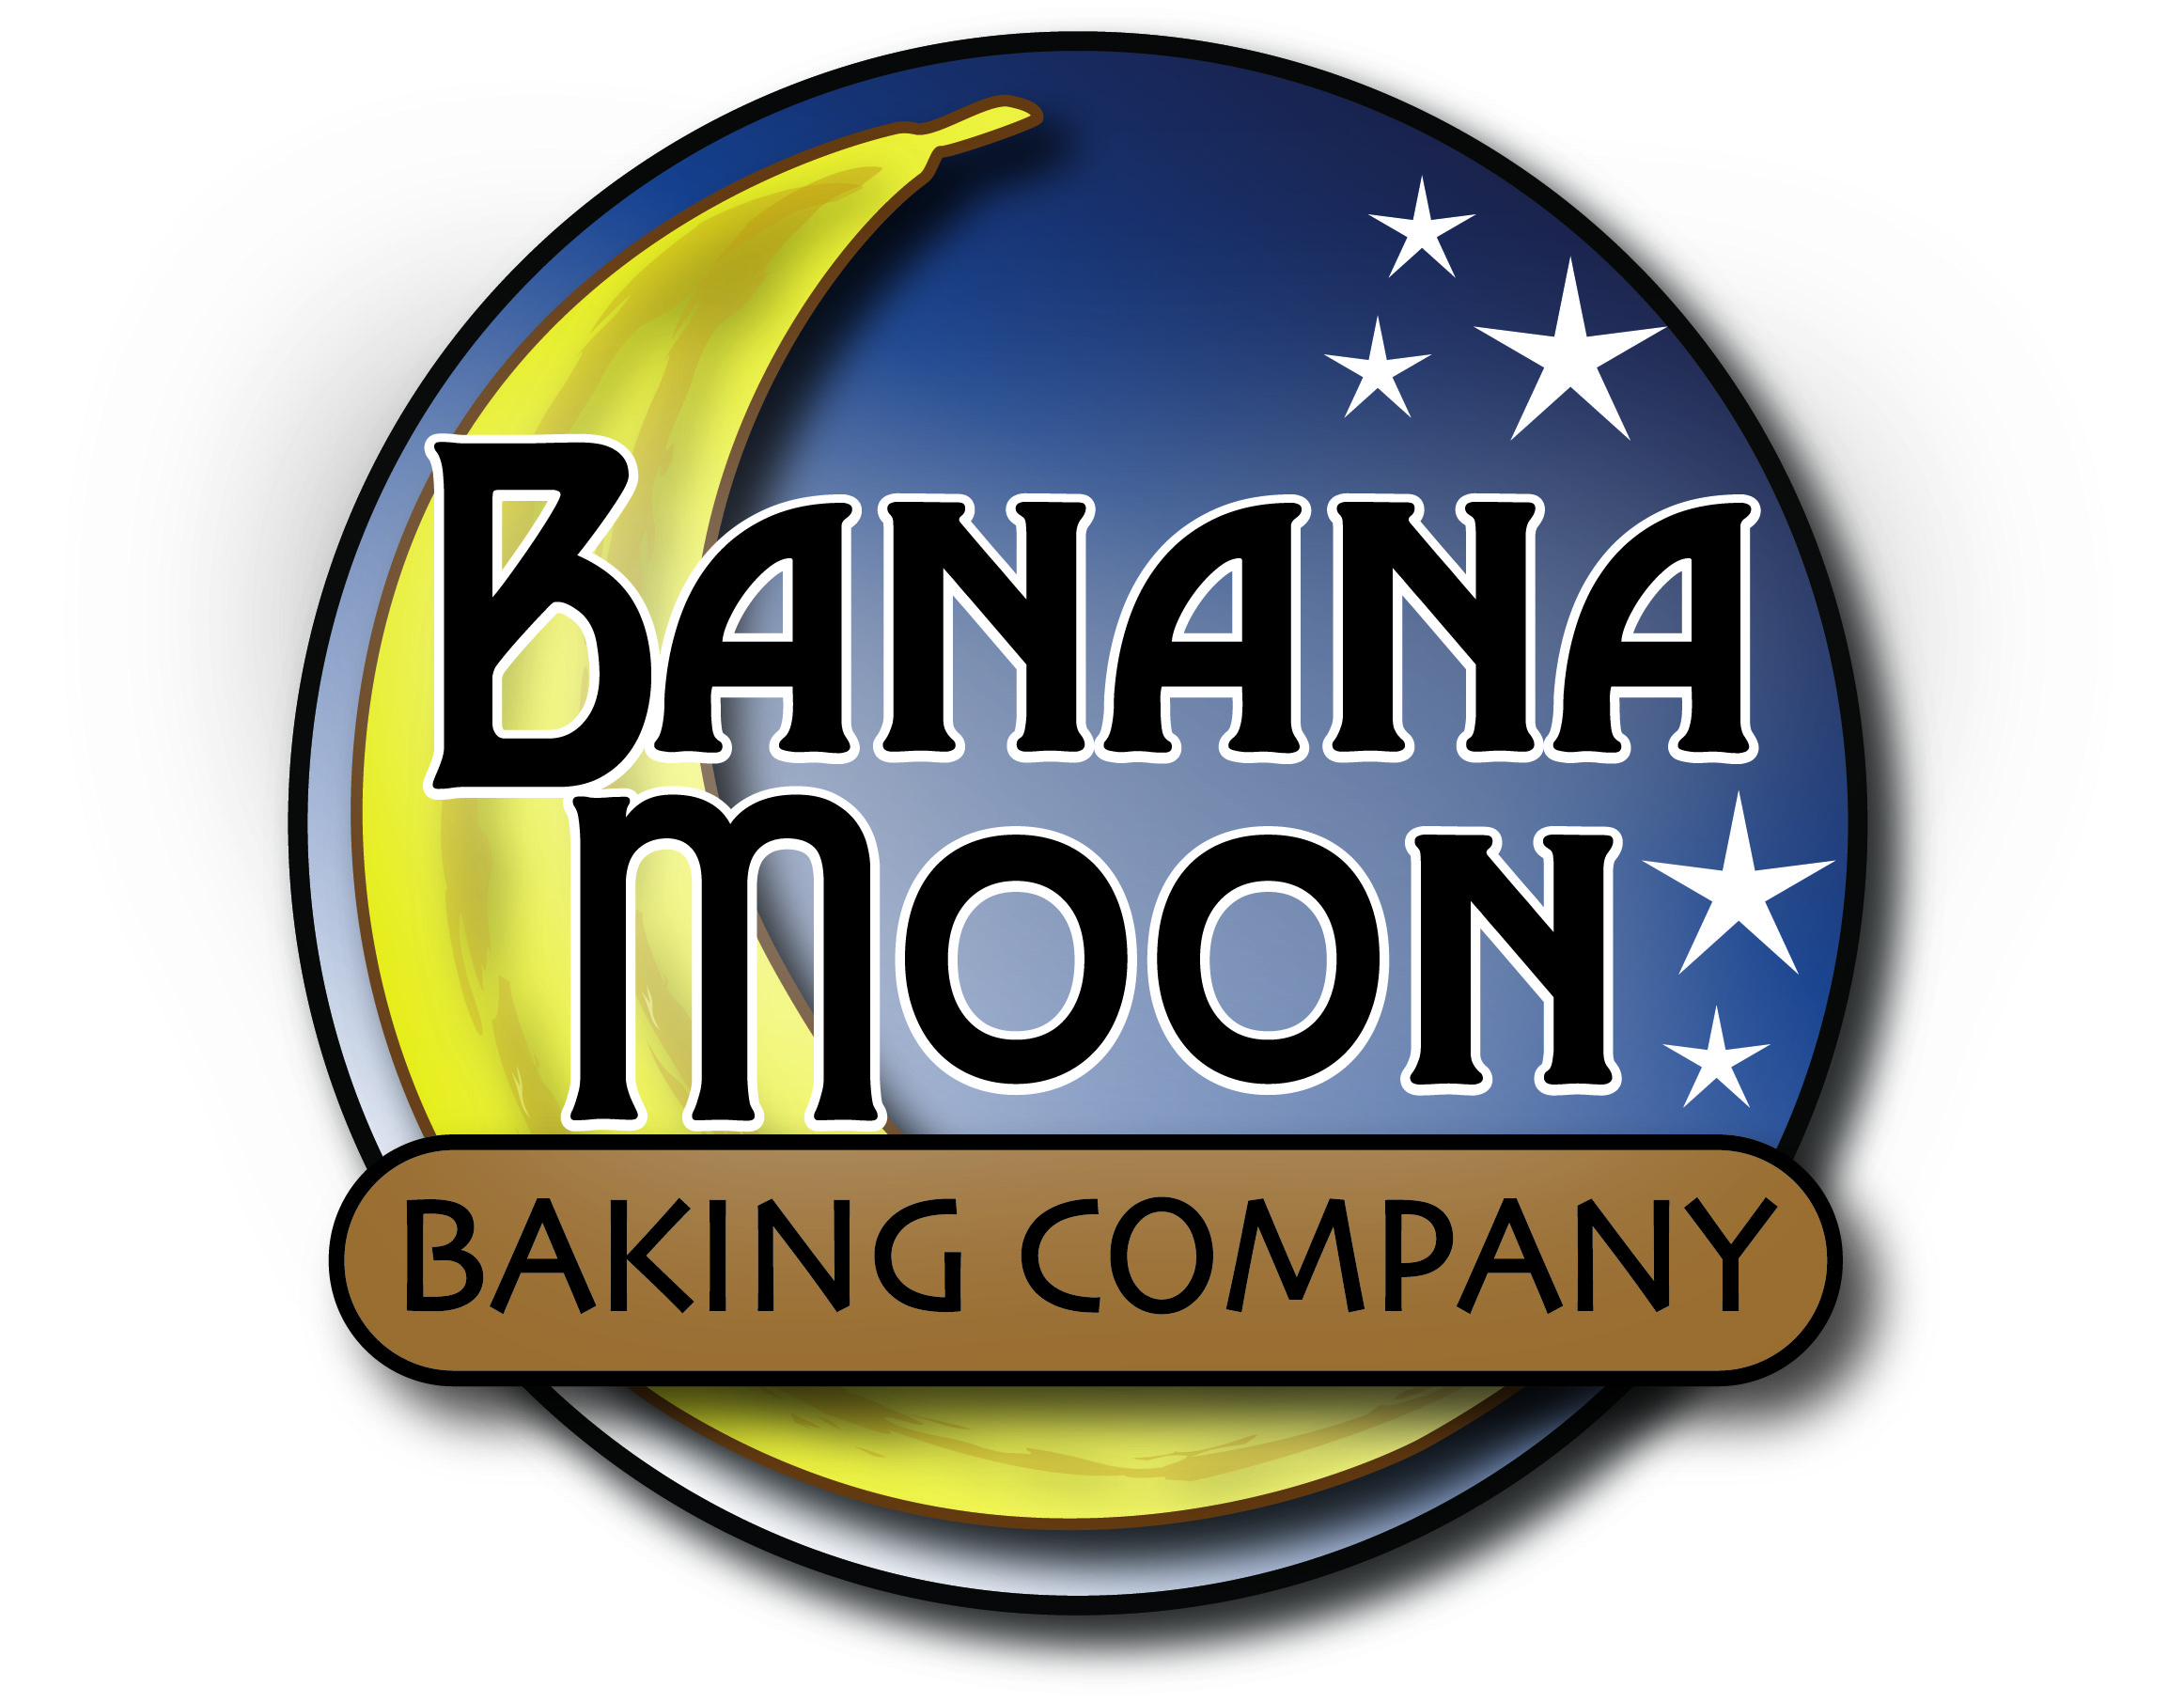 Banana Moon Baking Company